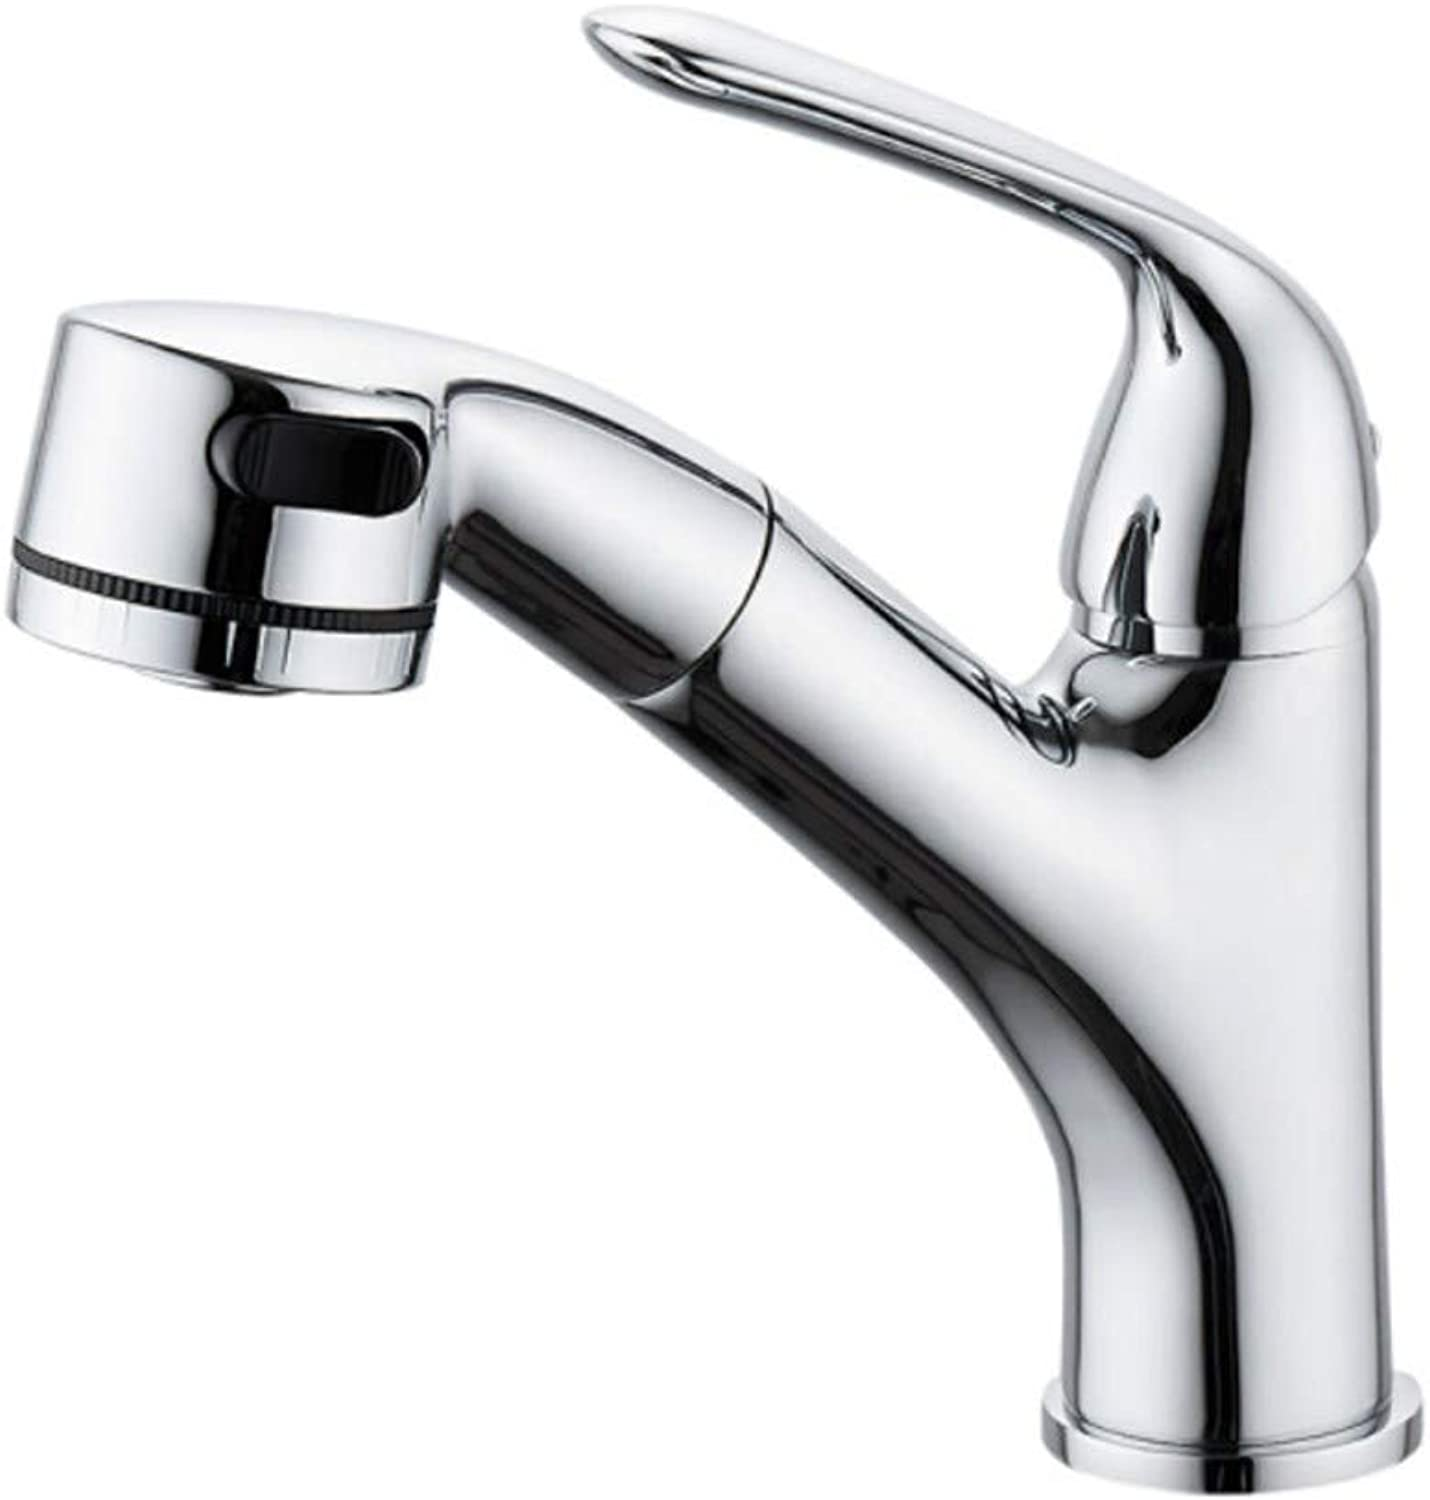 Kitchen Sink Taps Bathroom Taps Multifunctional Draw-Type Washbasin Precision Copper Cold and Hot Water Faucet